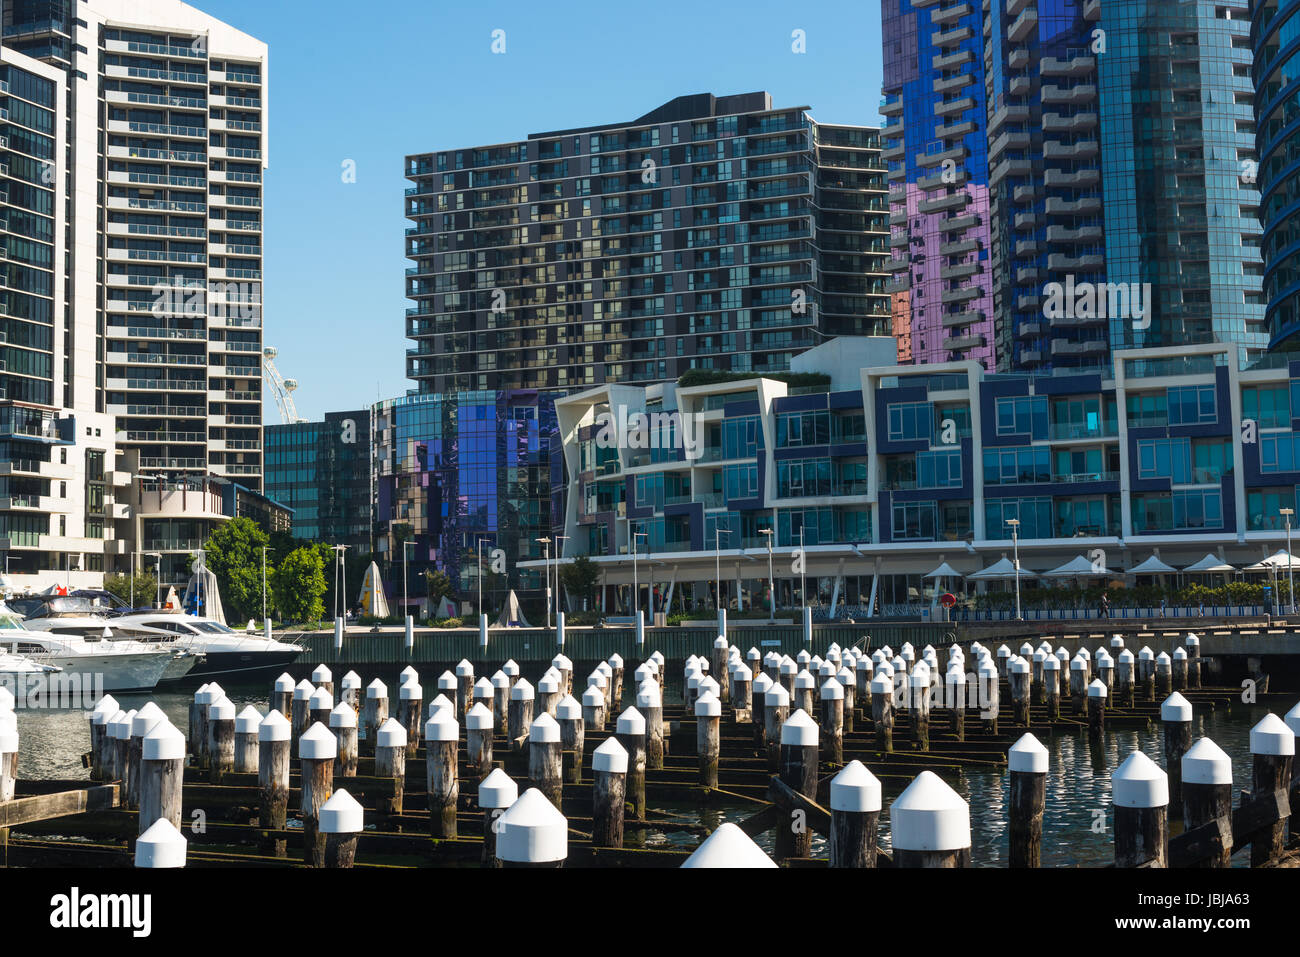 Waterfront City in Melbourne Docklands. Victoria, Australia. - Stock Image